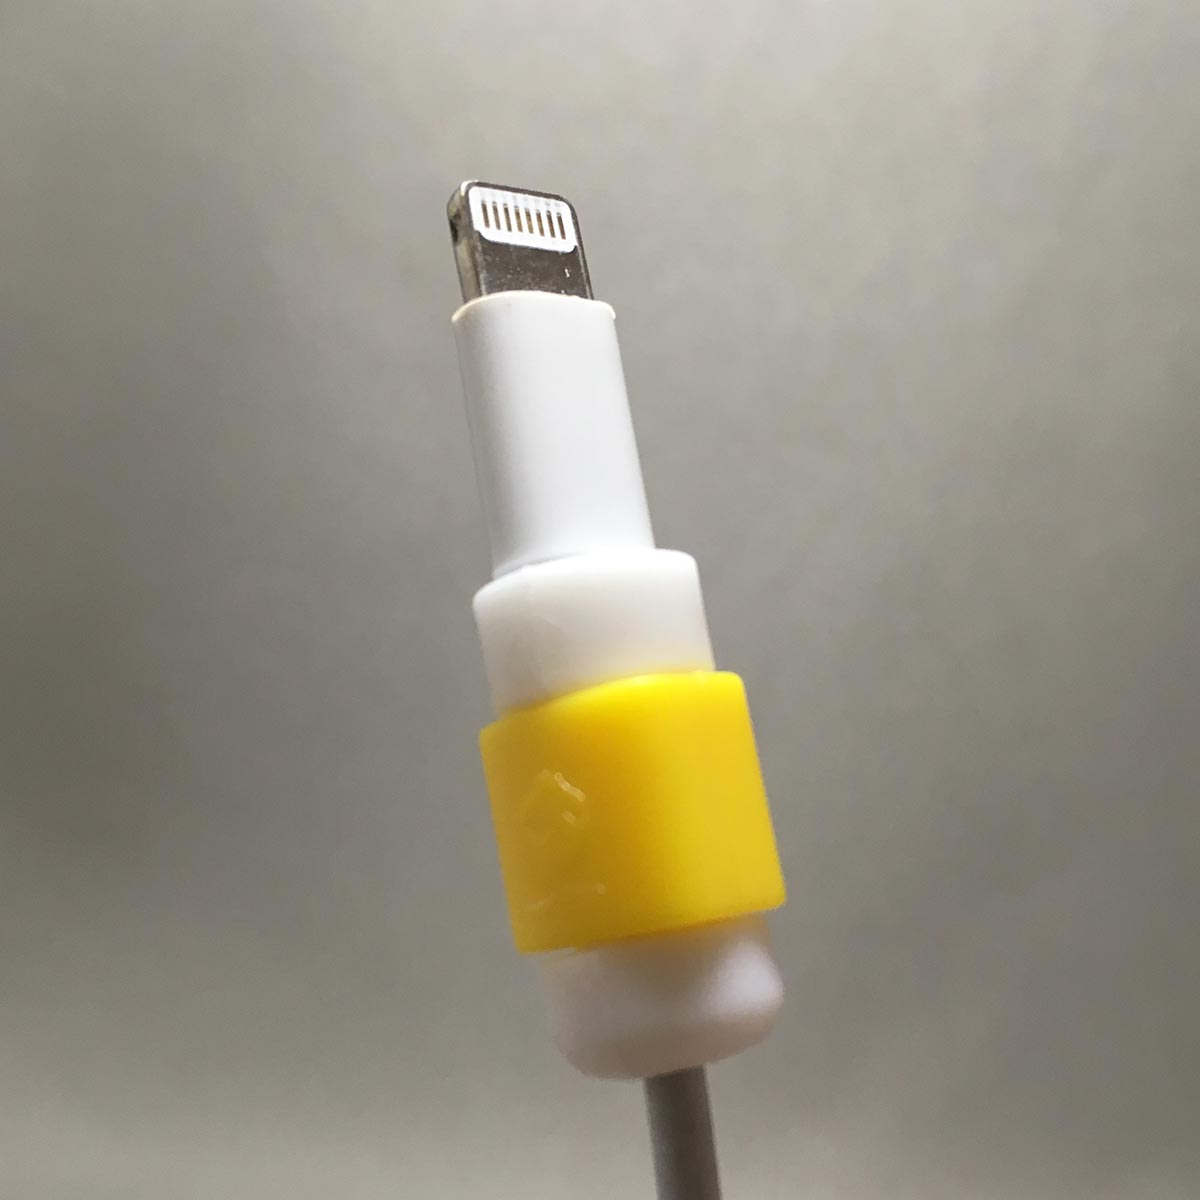 Lightning Cable Protector - Attached to cable step 3